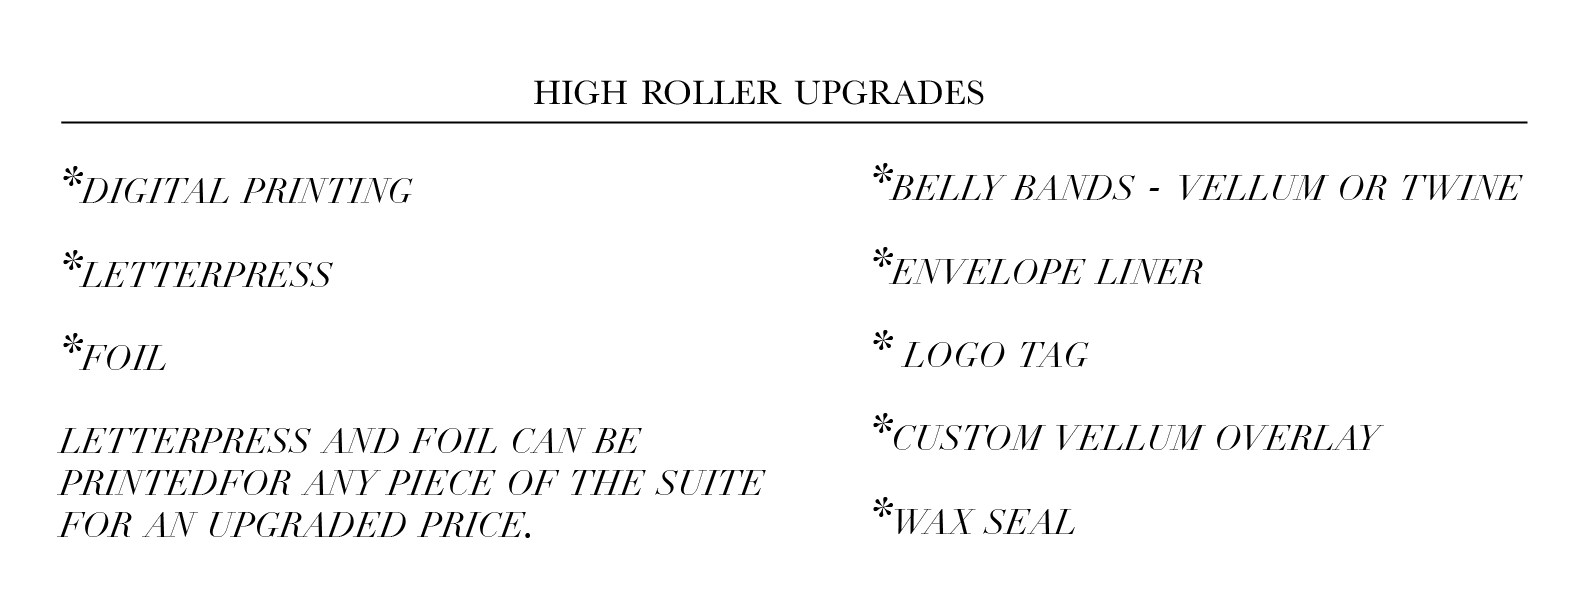 upgrades-11.png